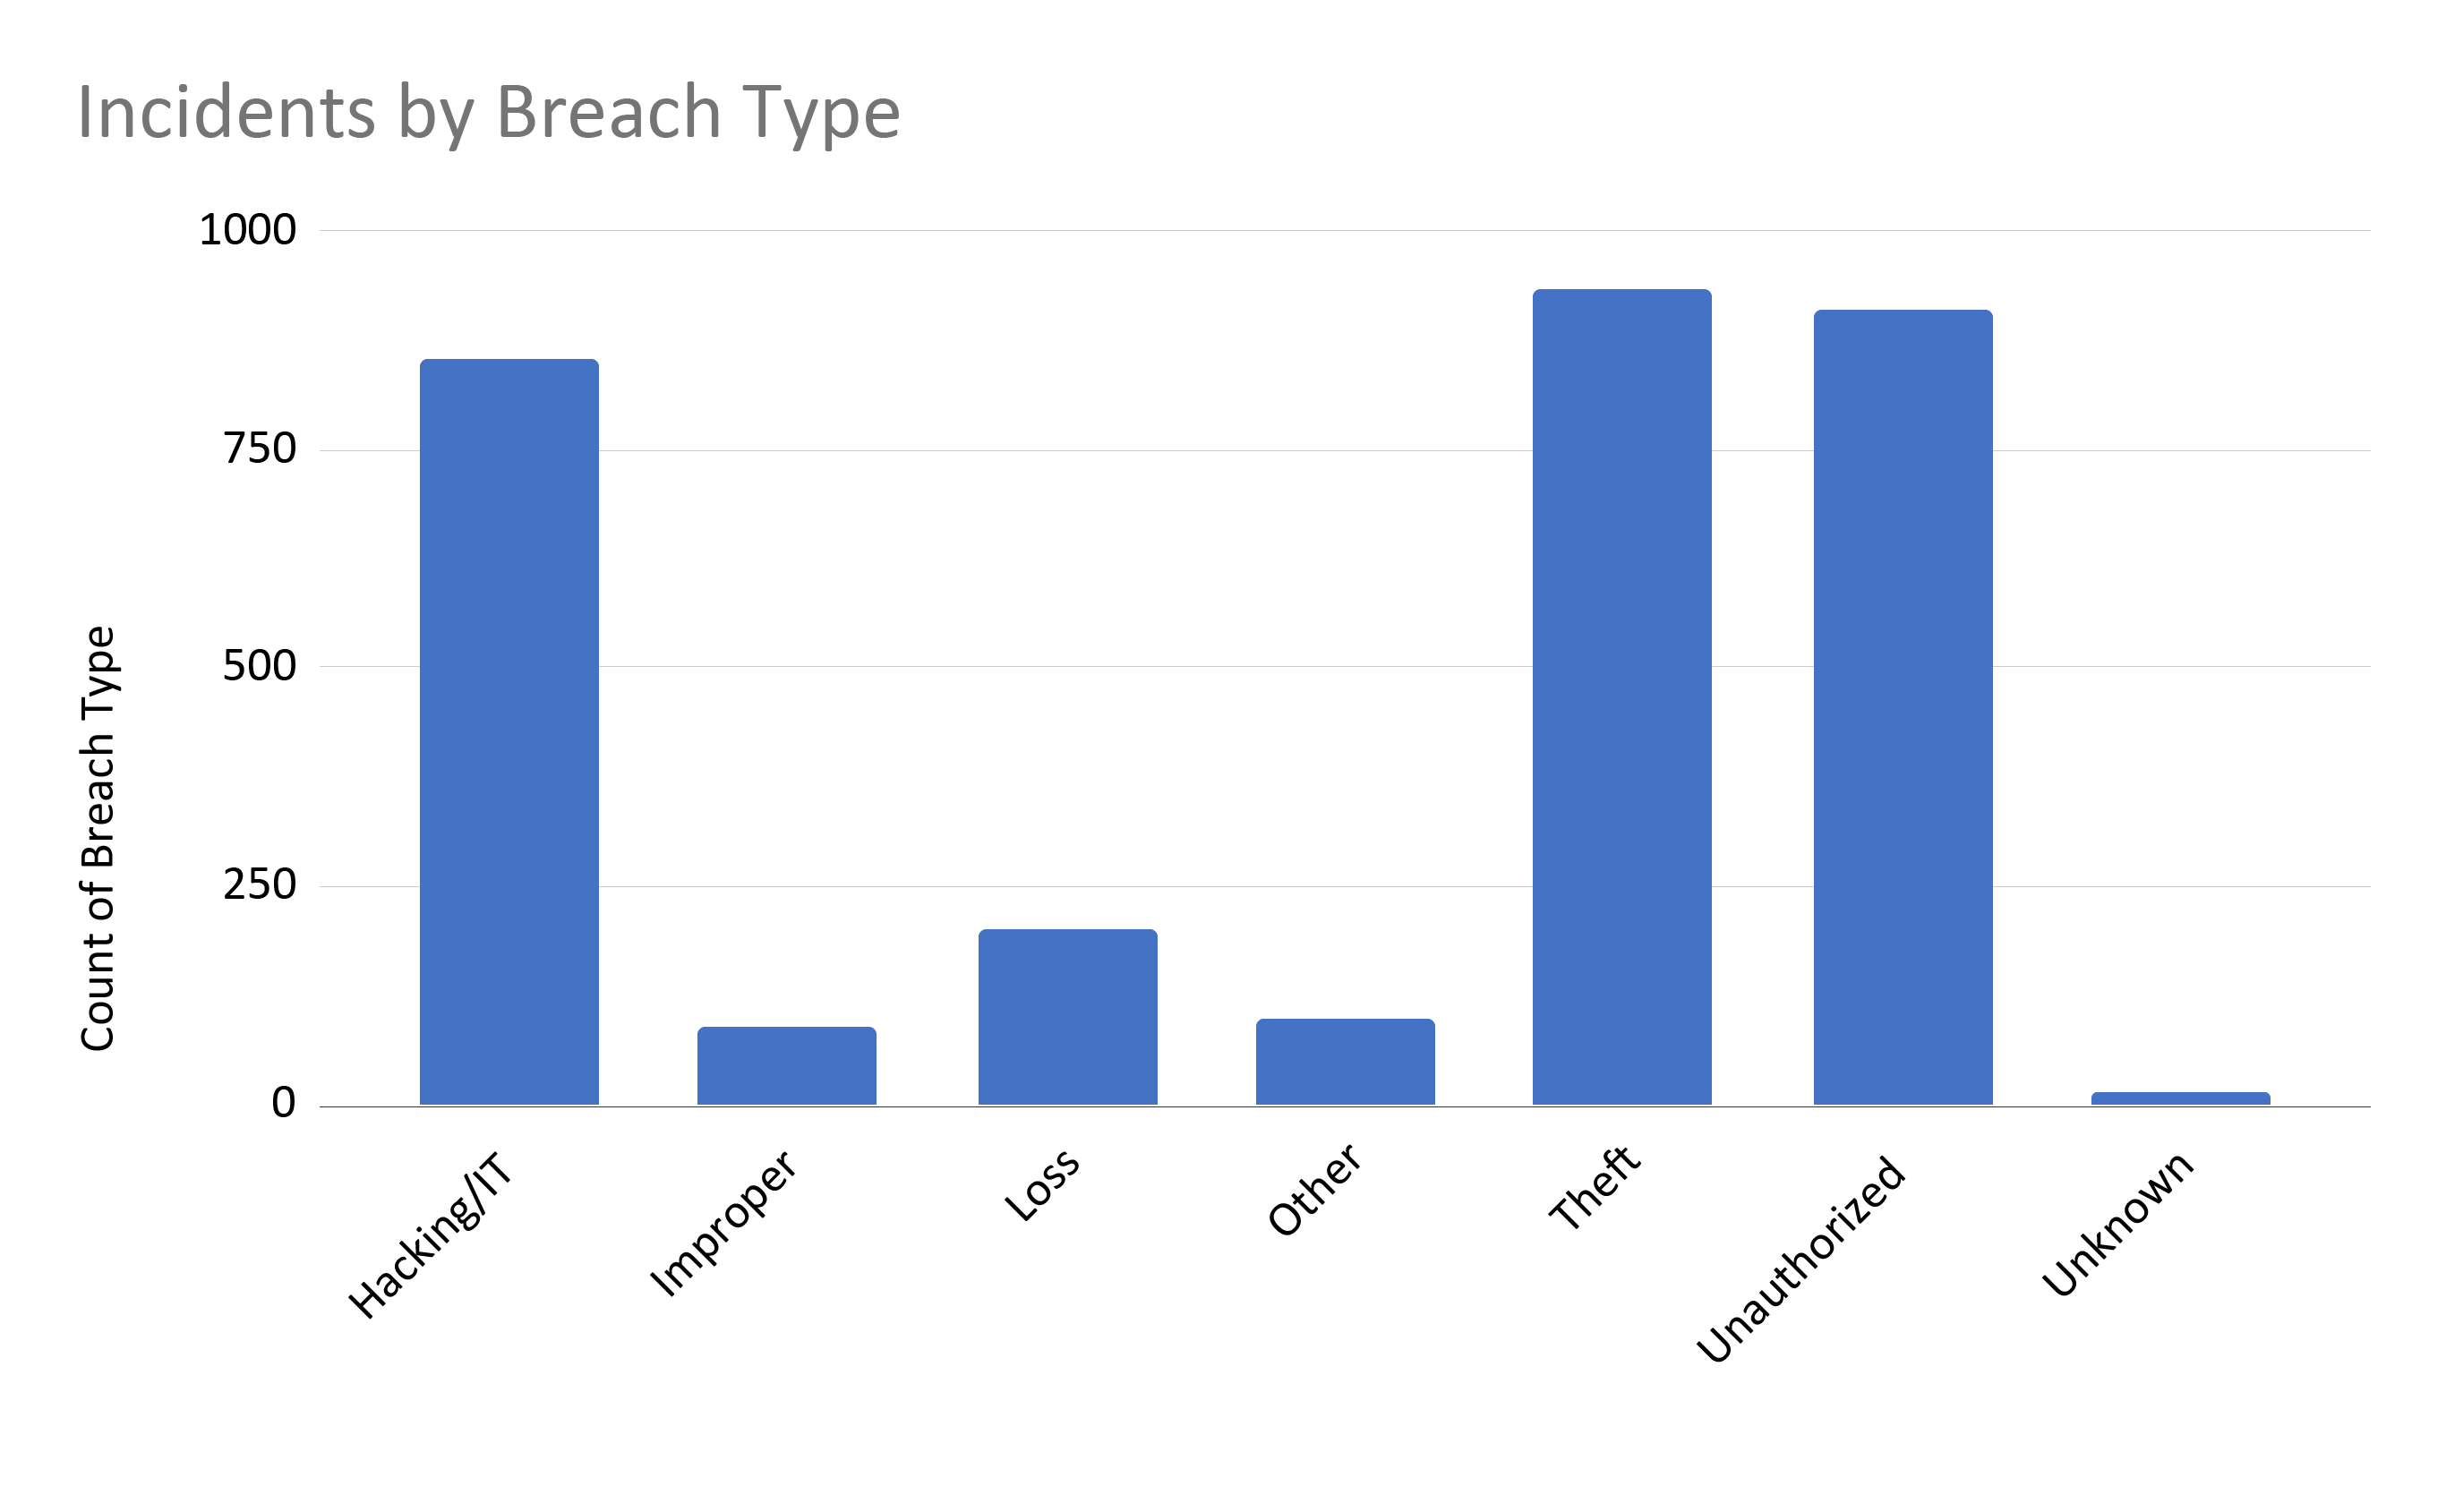 Total Number of Incidents by Breach Type